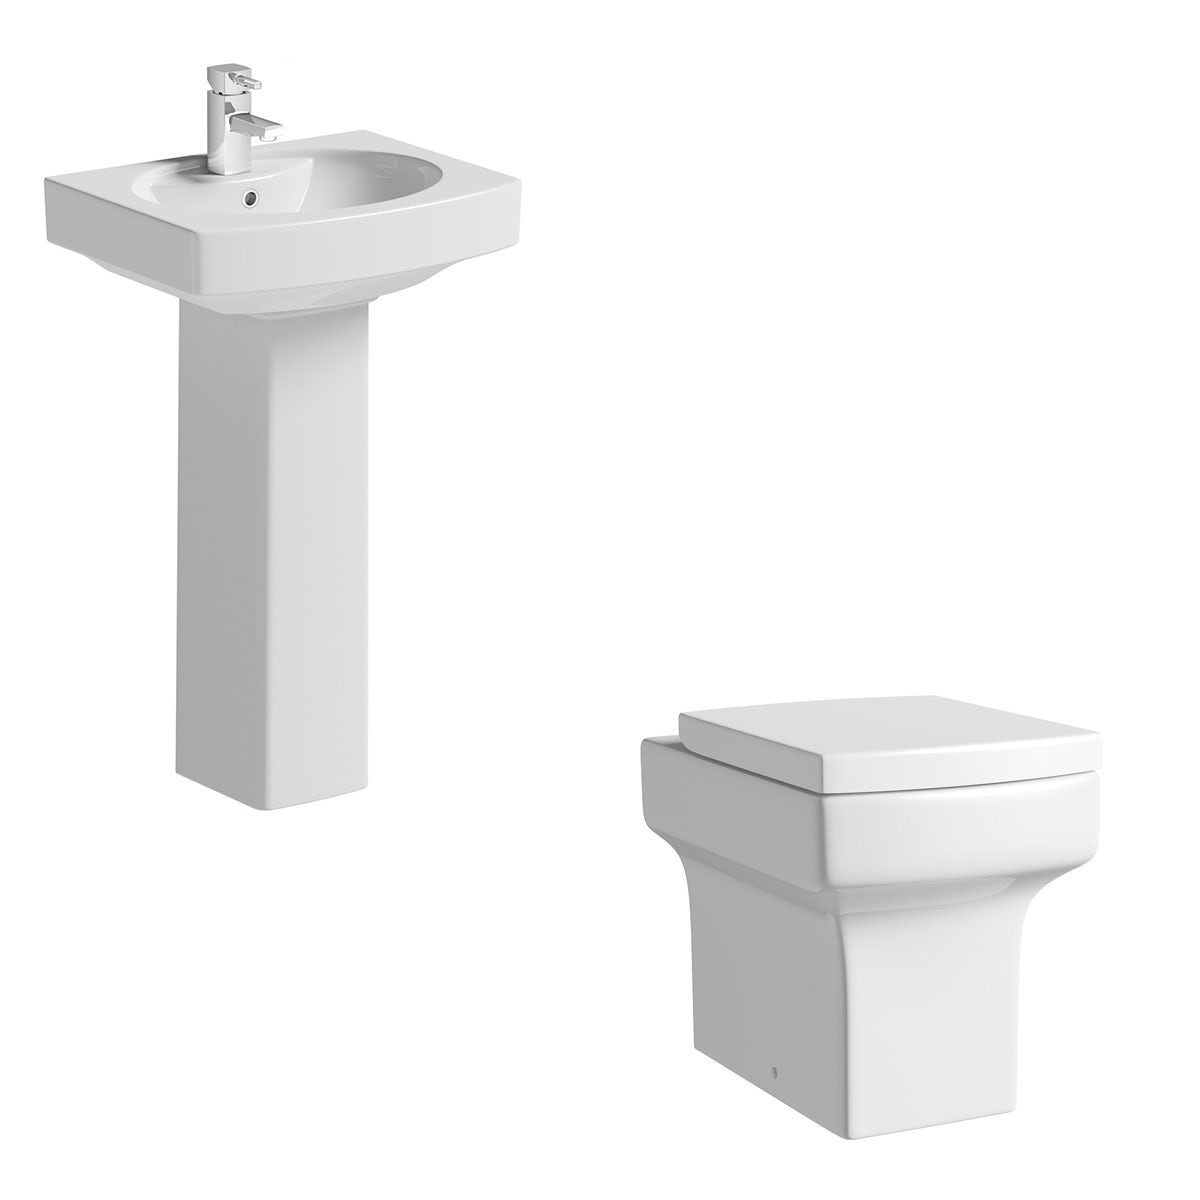 Orchard Wye back to wall cloakroom suite with full pedestal basin 555mm